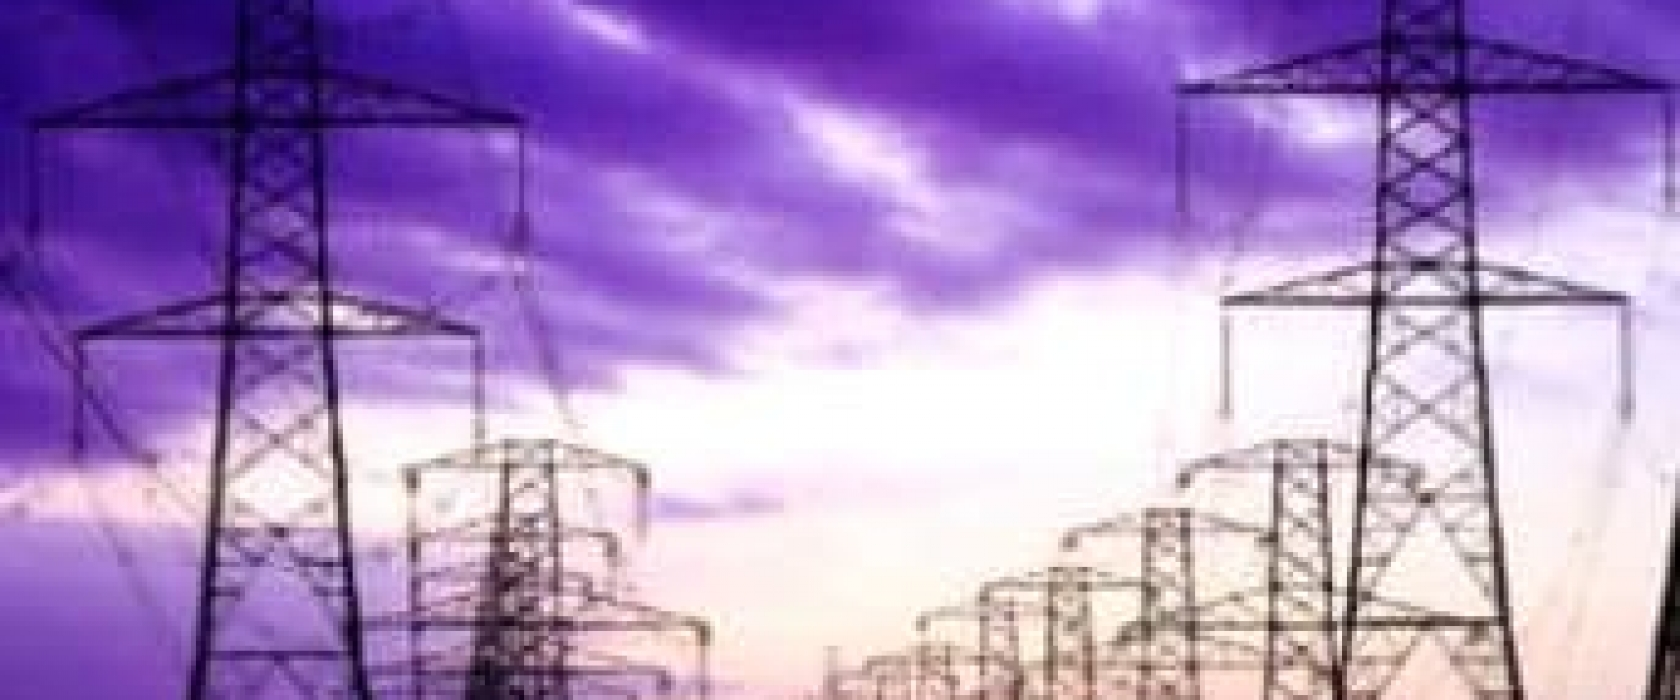 Increasing The Efficiency Of Long Distance Power Transmission Oilprice Com